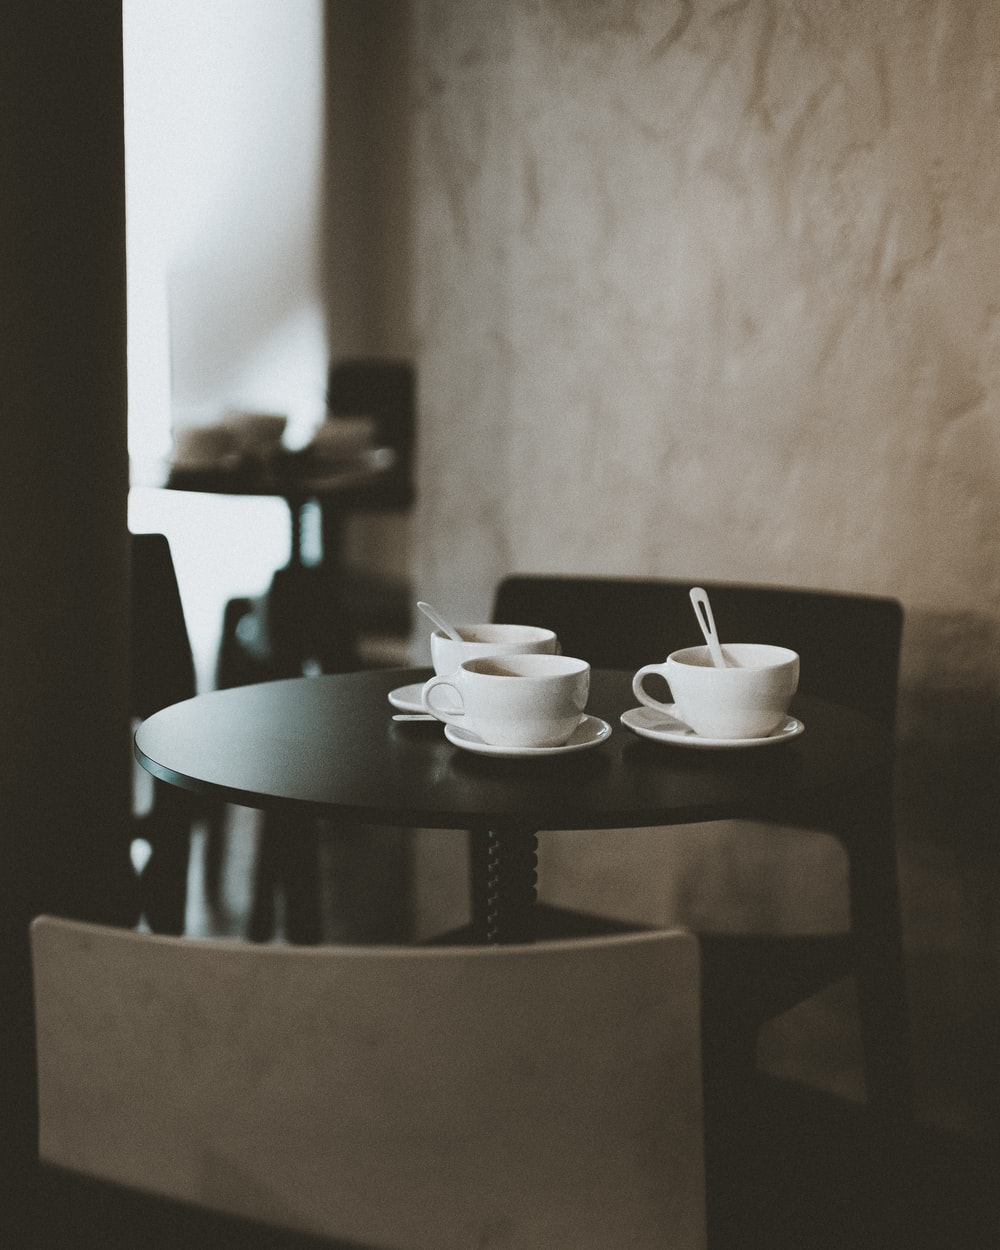 three white ceramic teacups on black wooden table